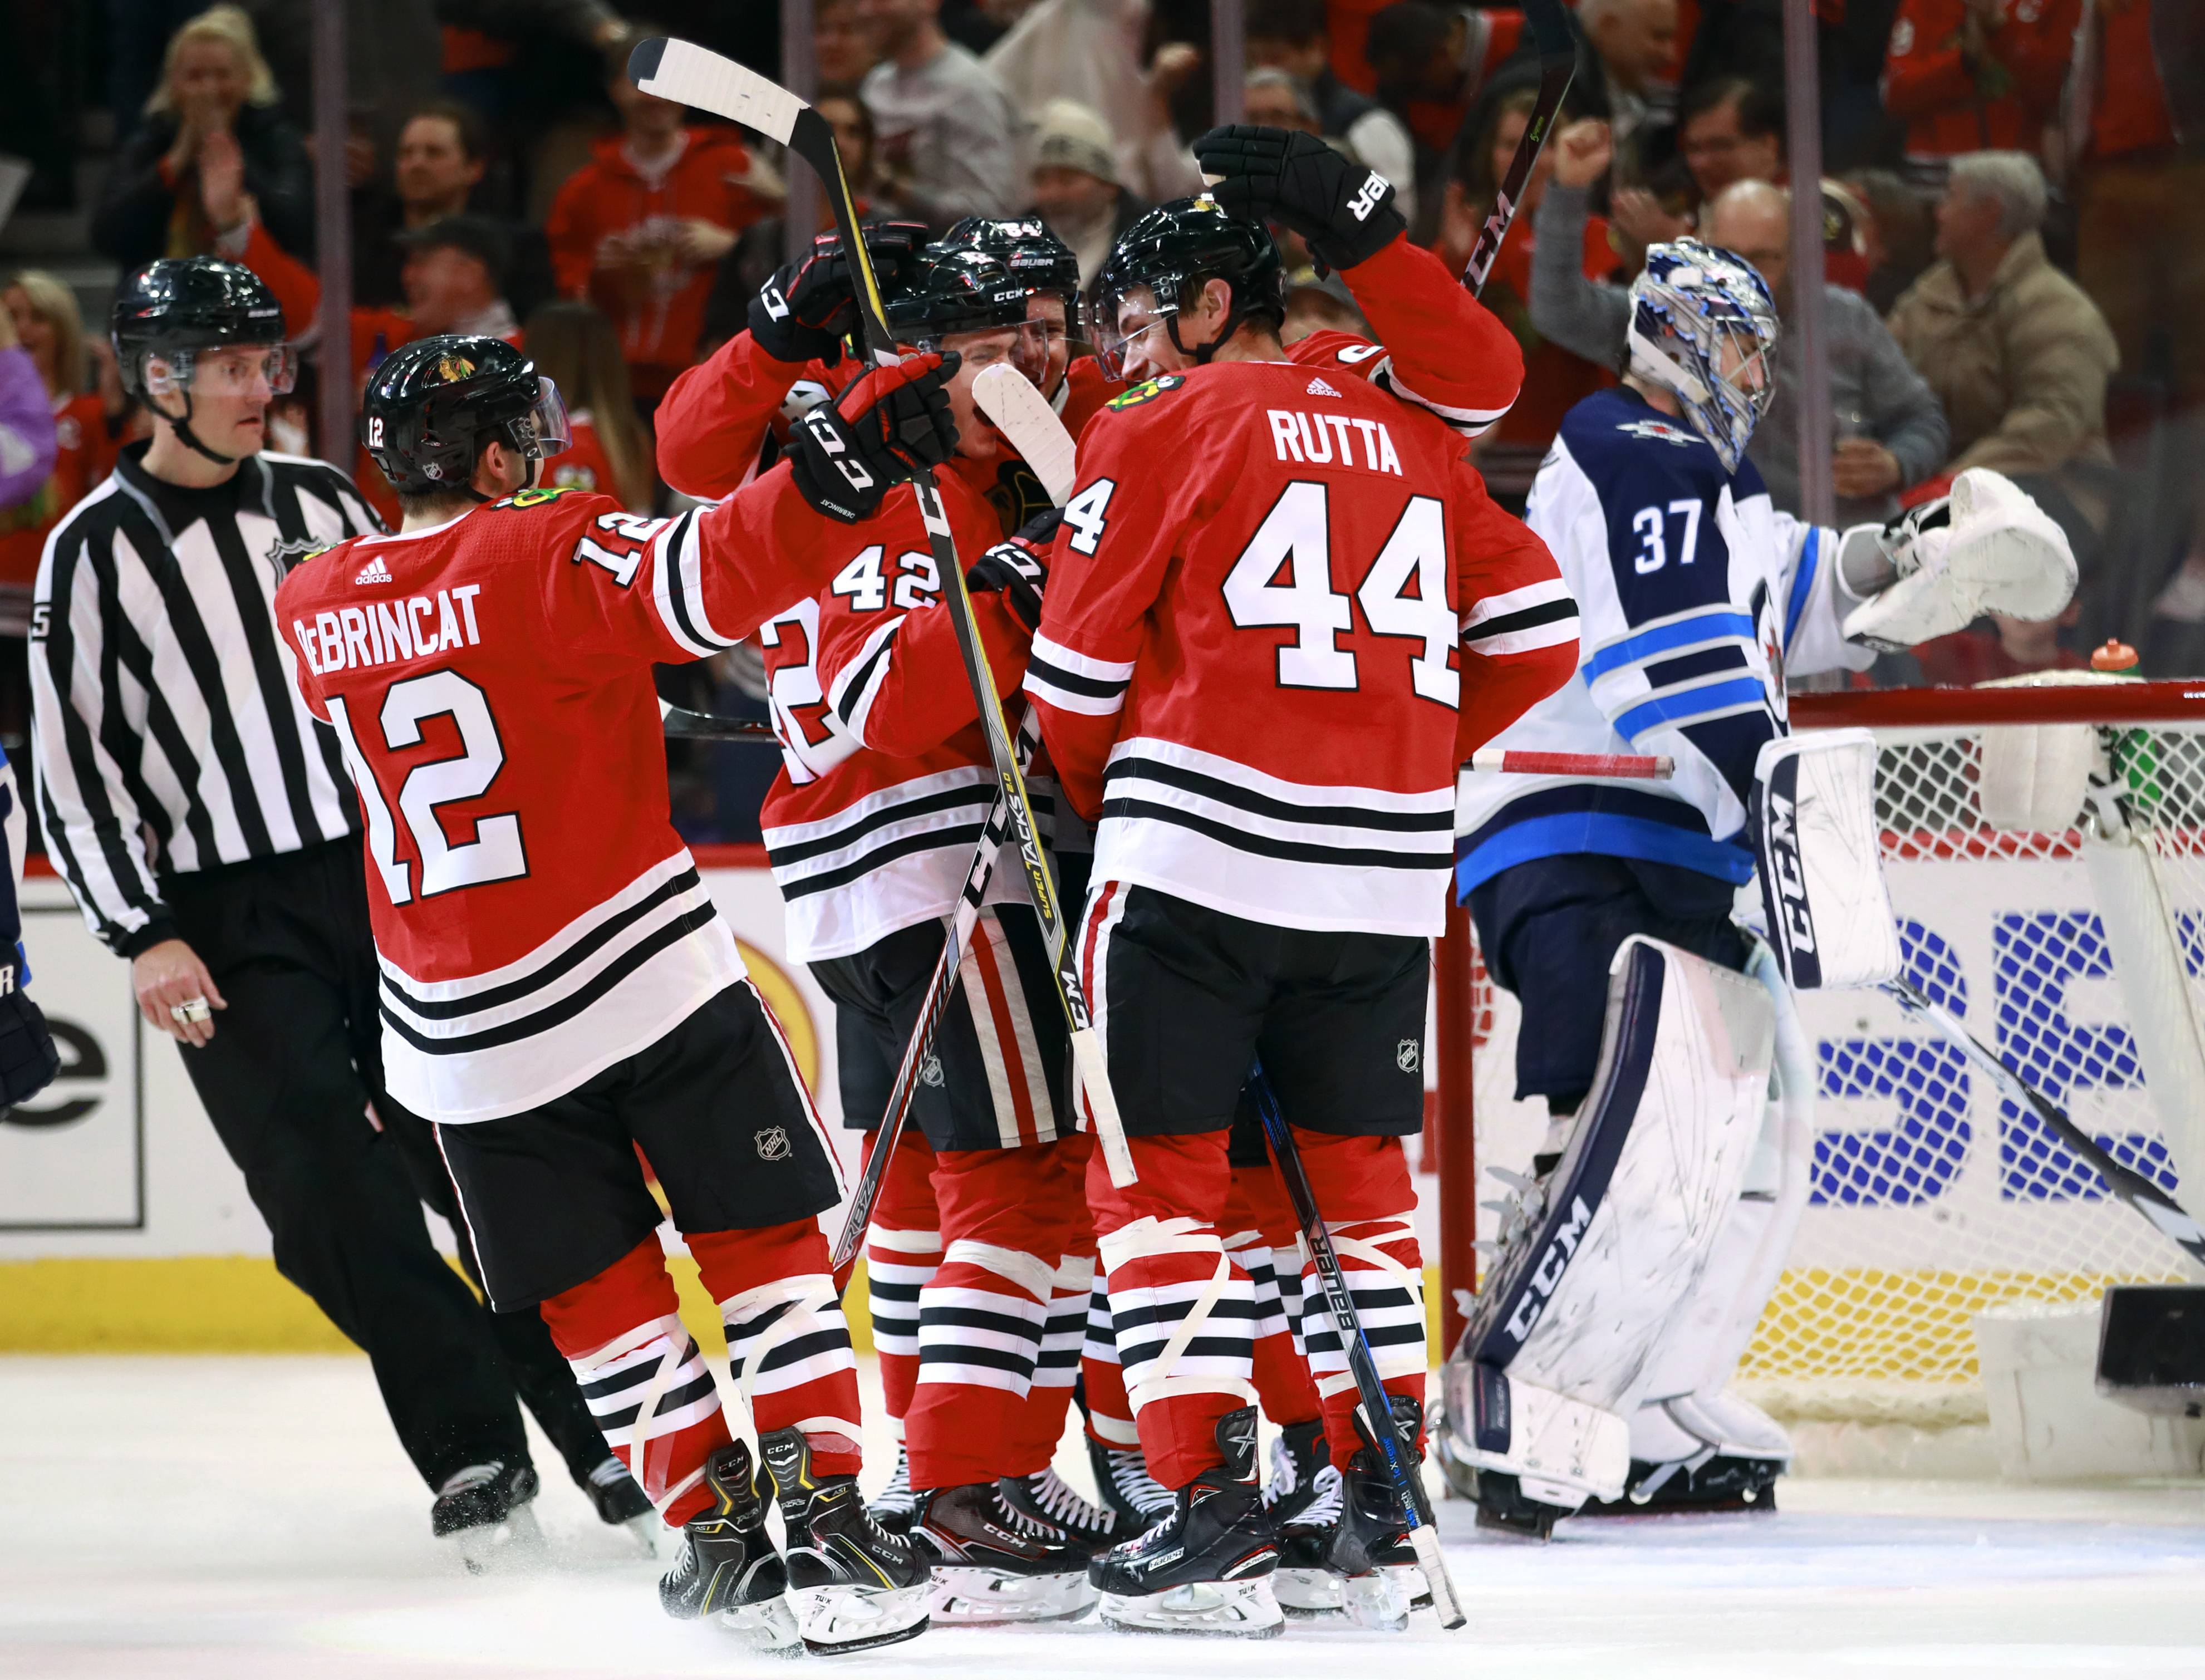 Blackhawks defenseman Jan Rutta celebrates with teammates after his goal as Winnipeg Jets goaltender Connor Hellebuyck (37) stands in the net during the second period on Friday night at the United Center in Chicago.